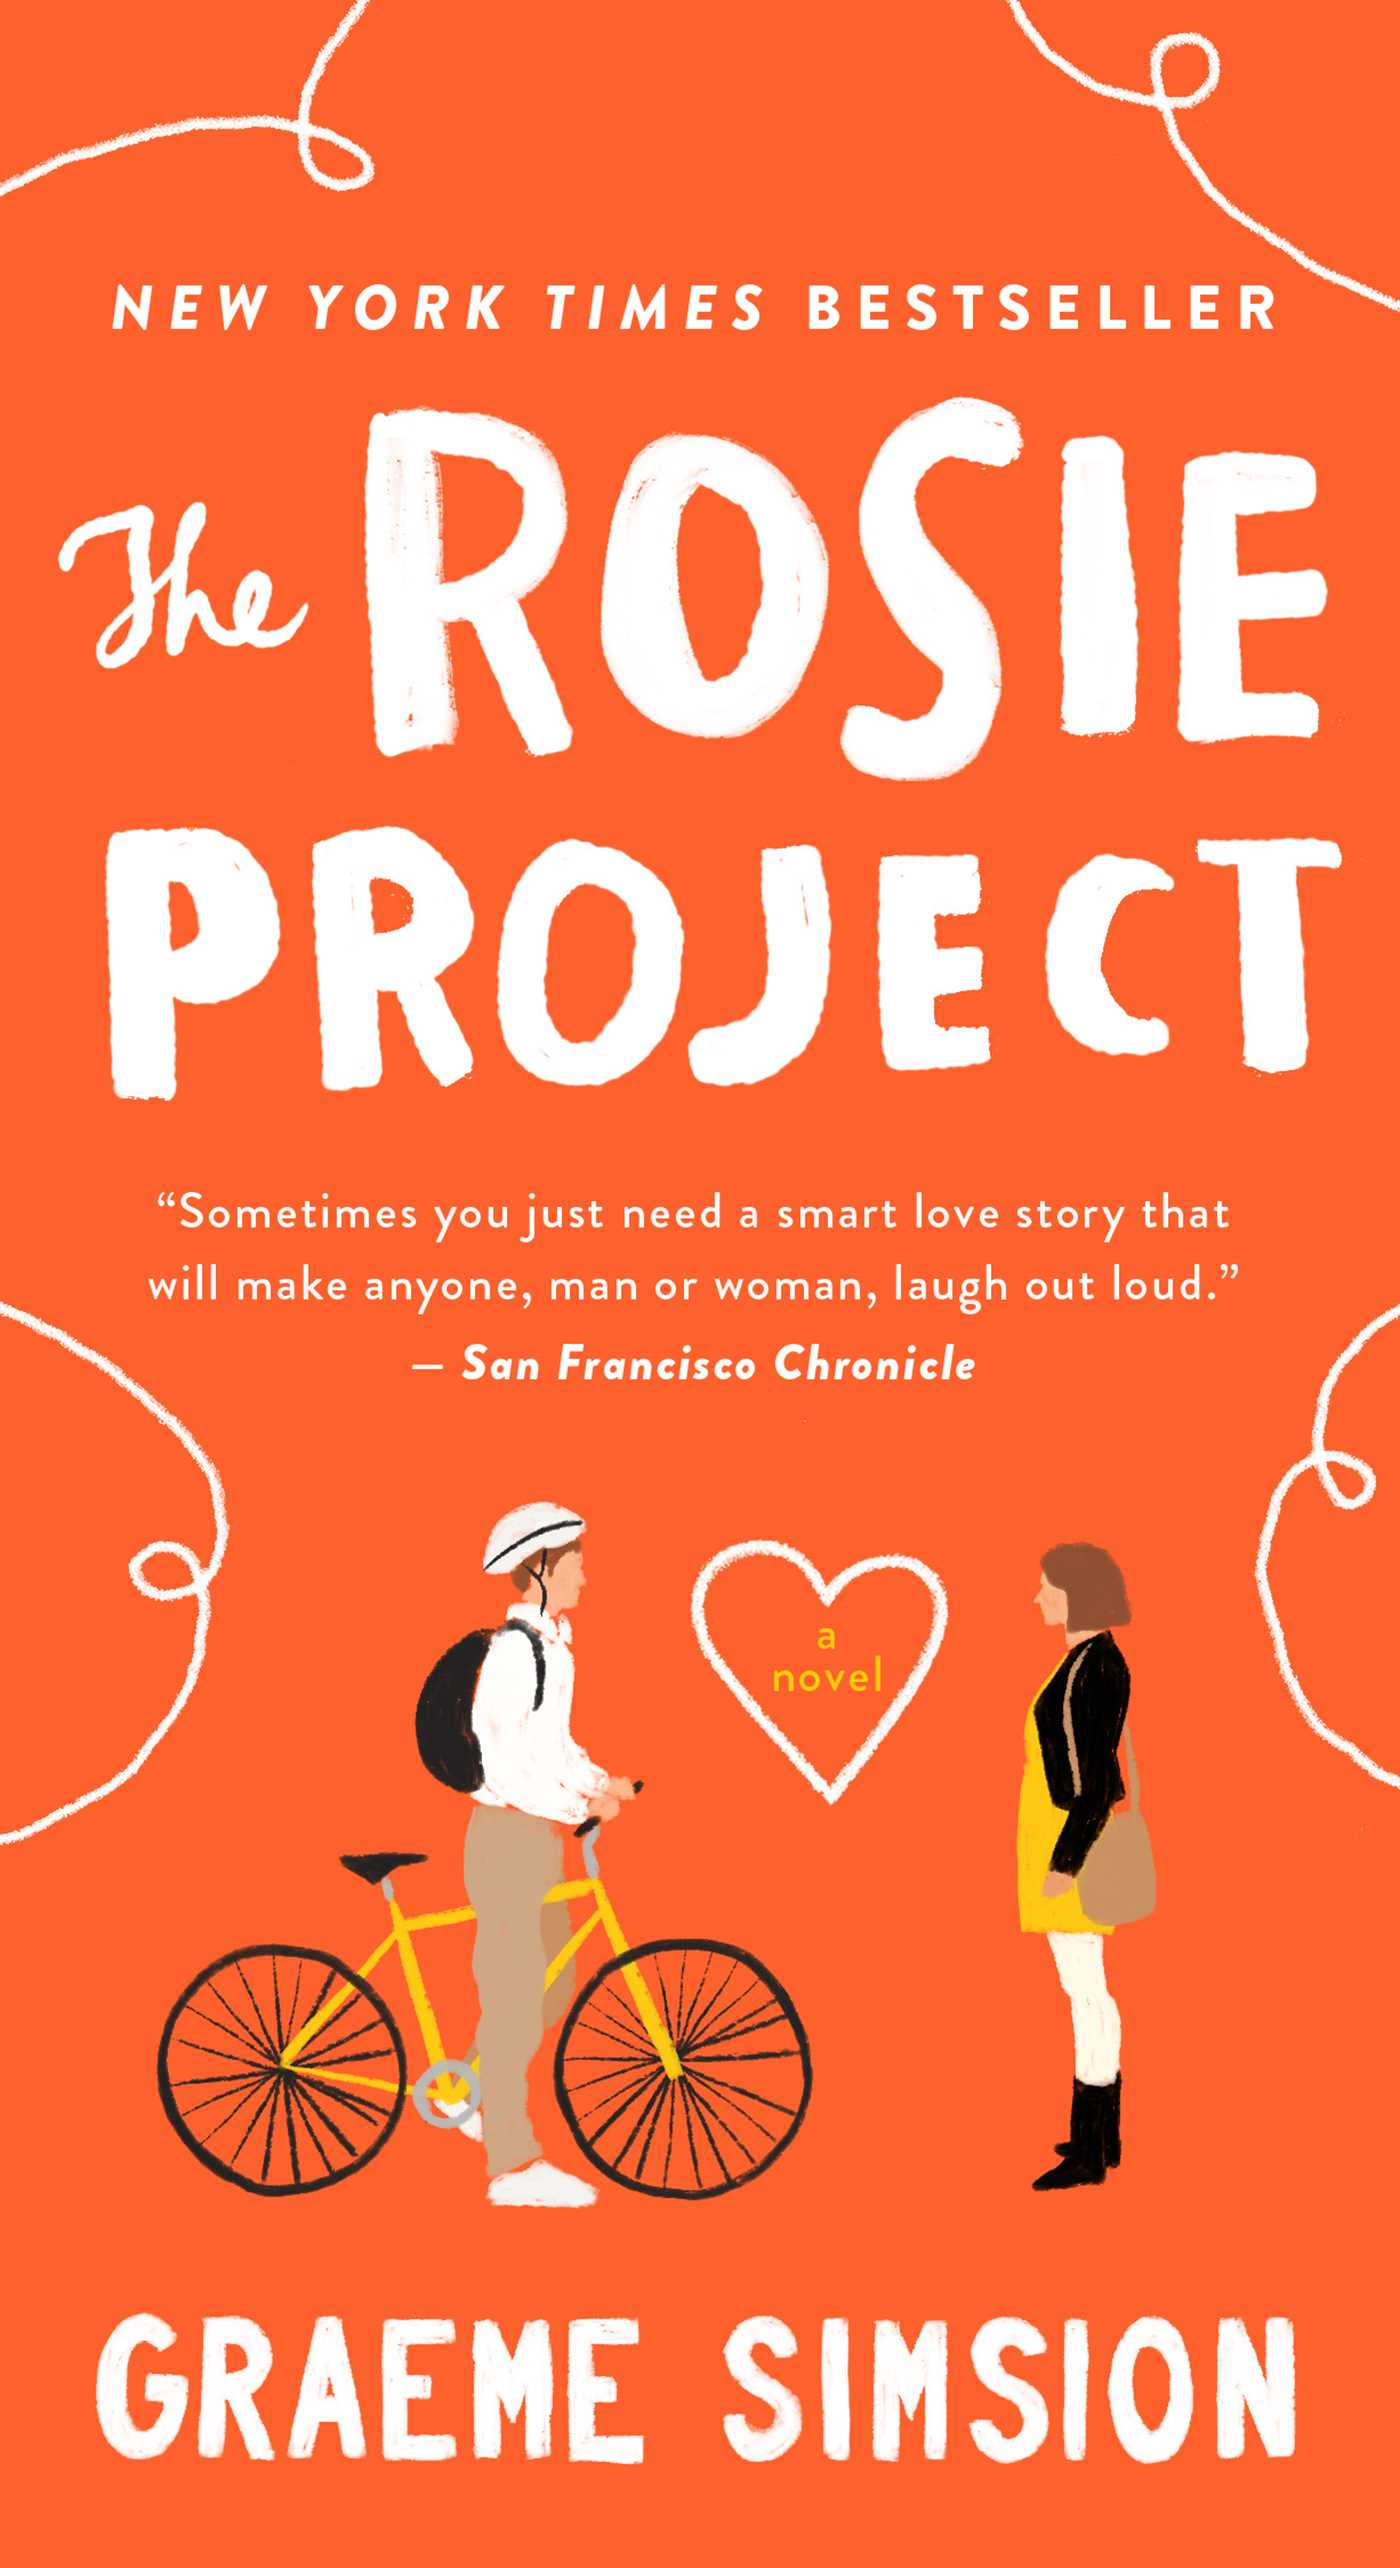 The rosie project 9781476729107 hr